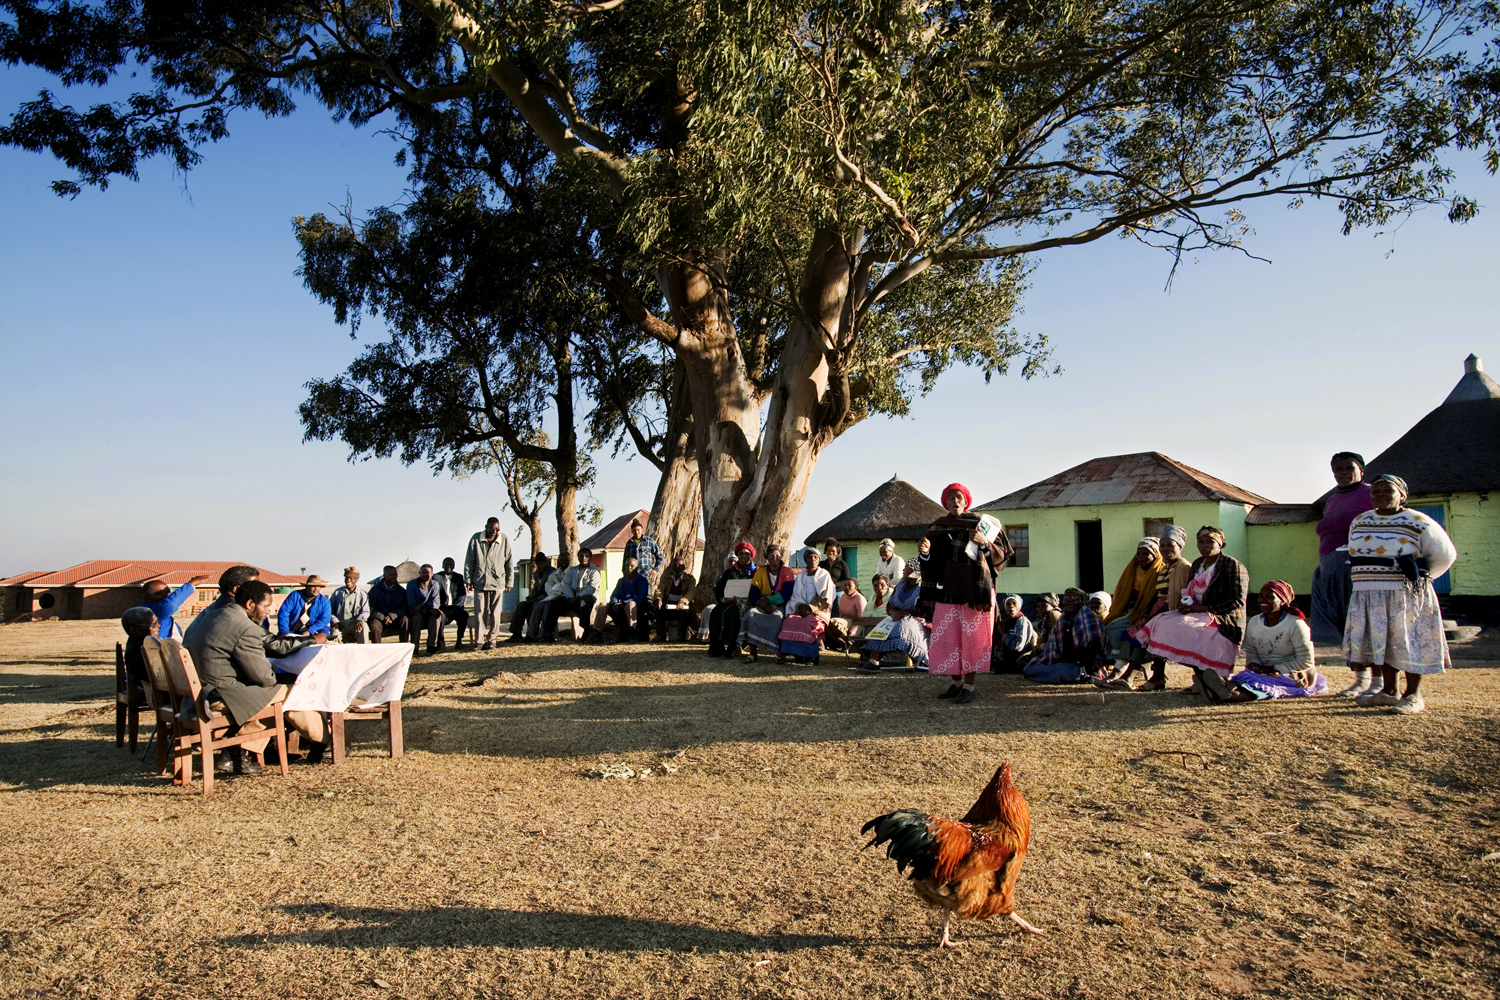 Having been adopted at age nine by a Thambu chief and raised in this village, Mandela has said that it is underneath this tree where he learned the value of consensus politics, as each Wednesday evening the community would gather with the village elders to discuss the issues at hand. Everyone was given an opportunity to speak.